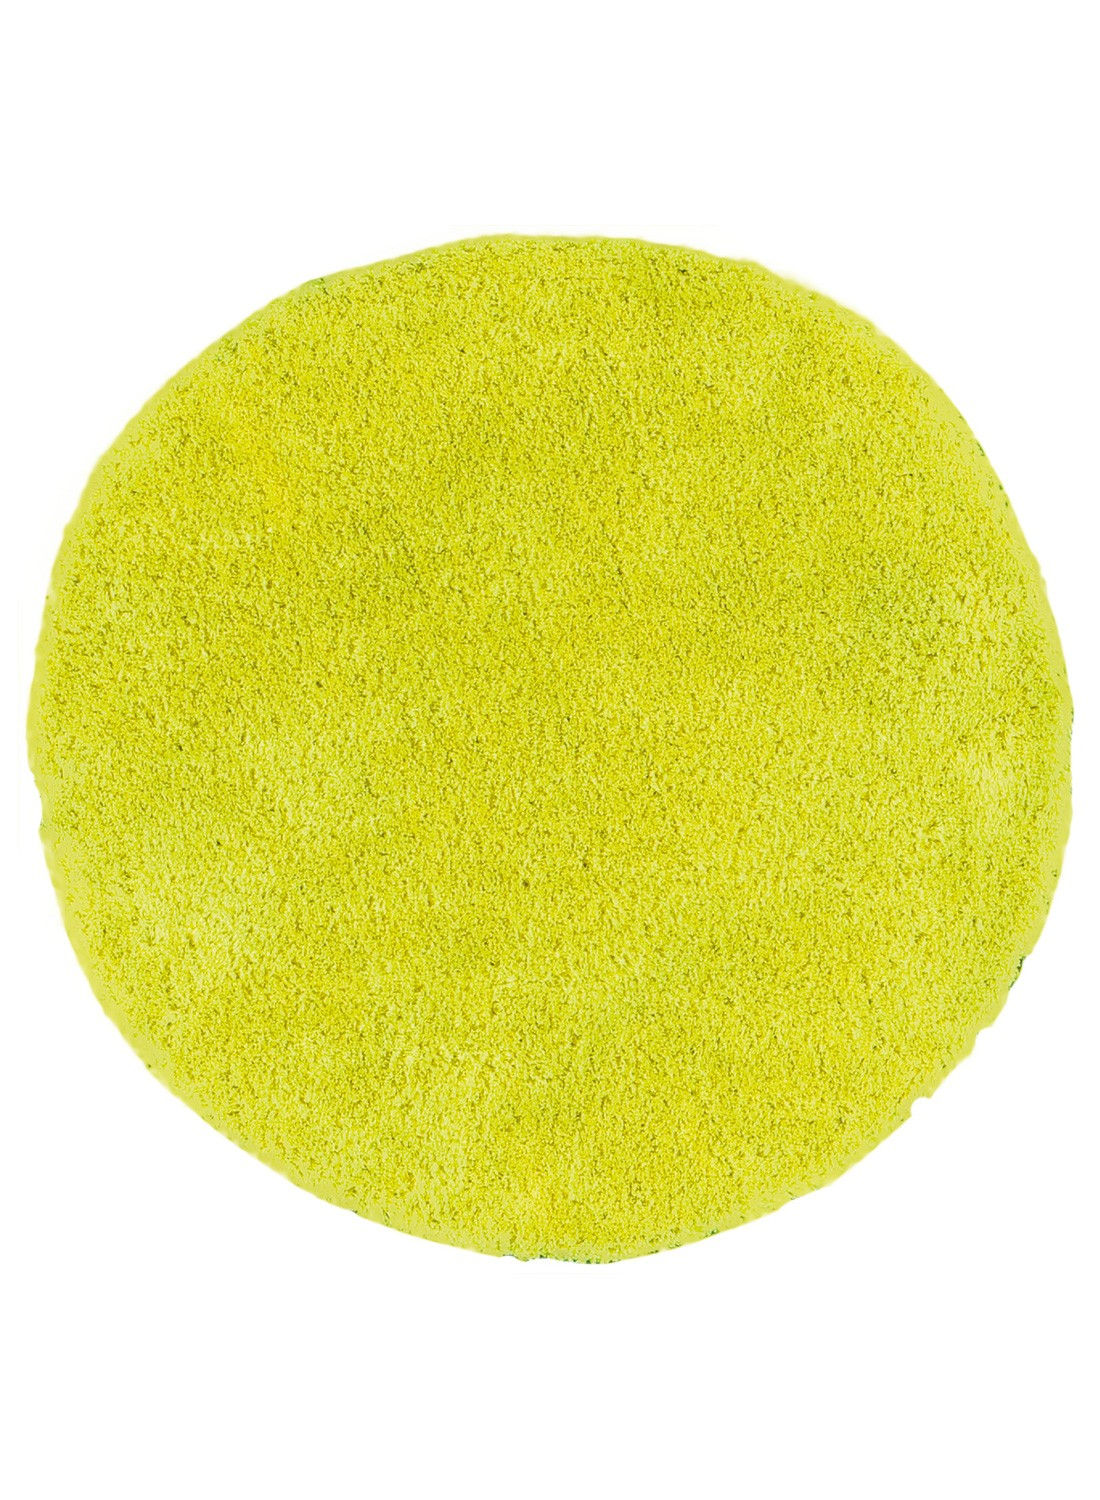 les tapis fluo rond jaune. Black Bedroom Furniture Sets. Home Design Ideas